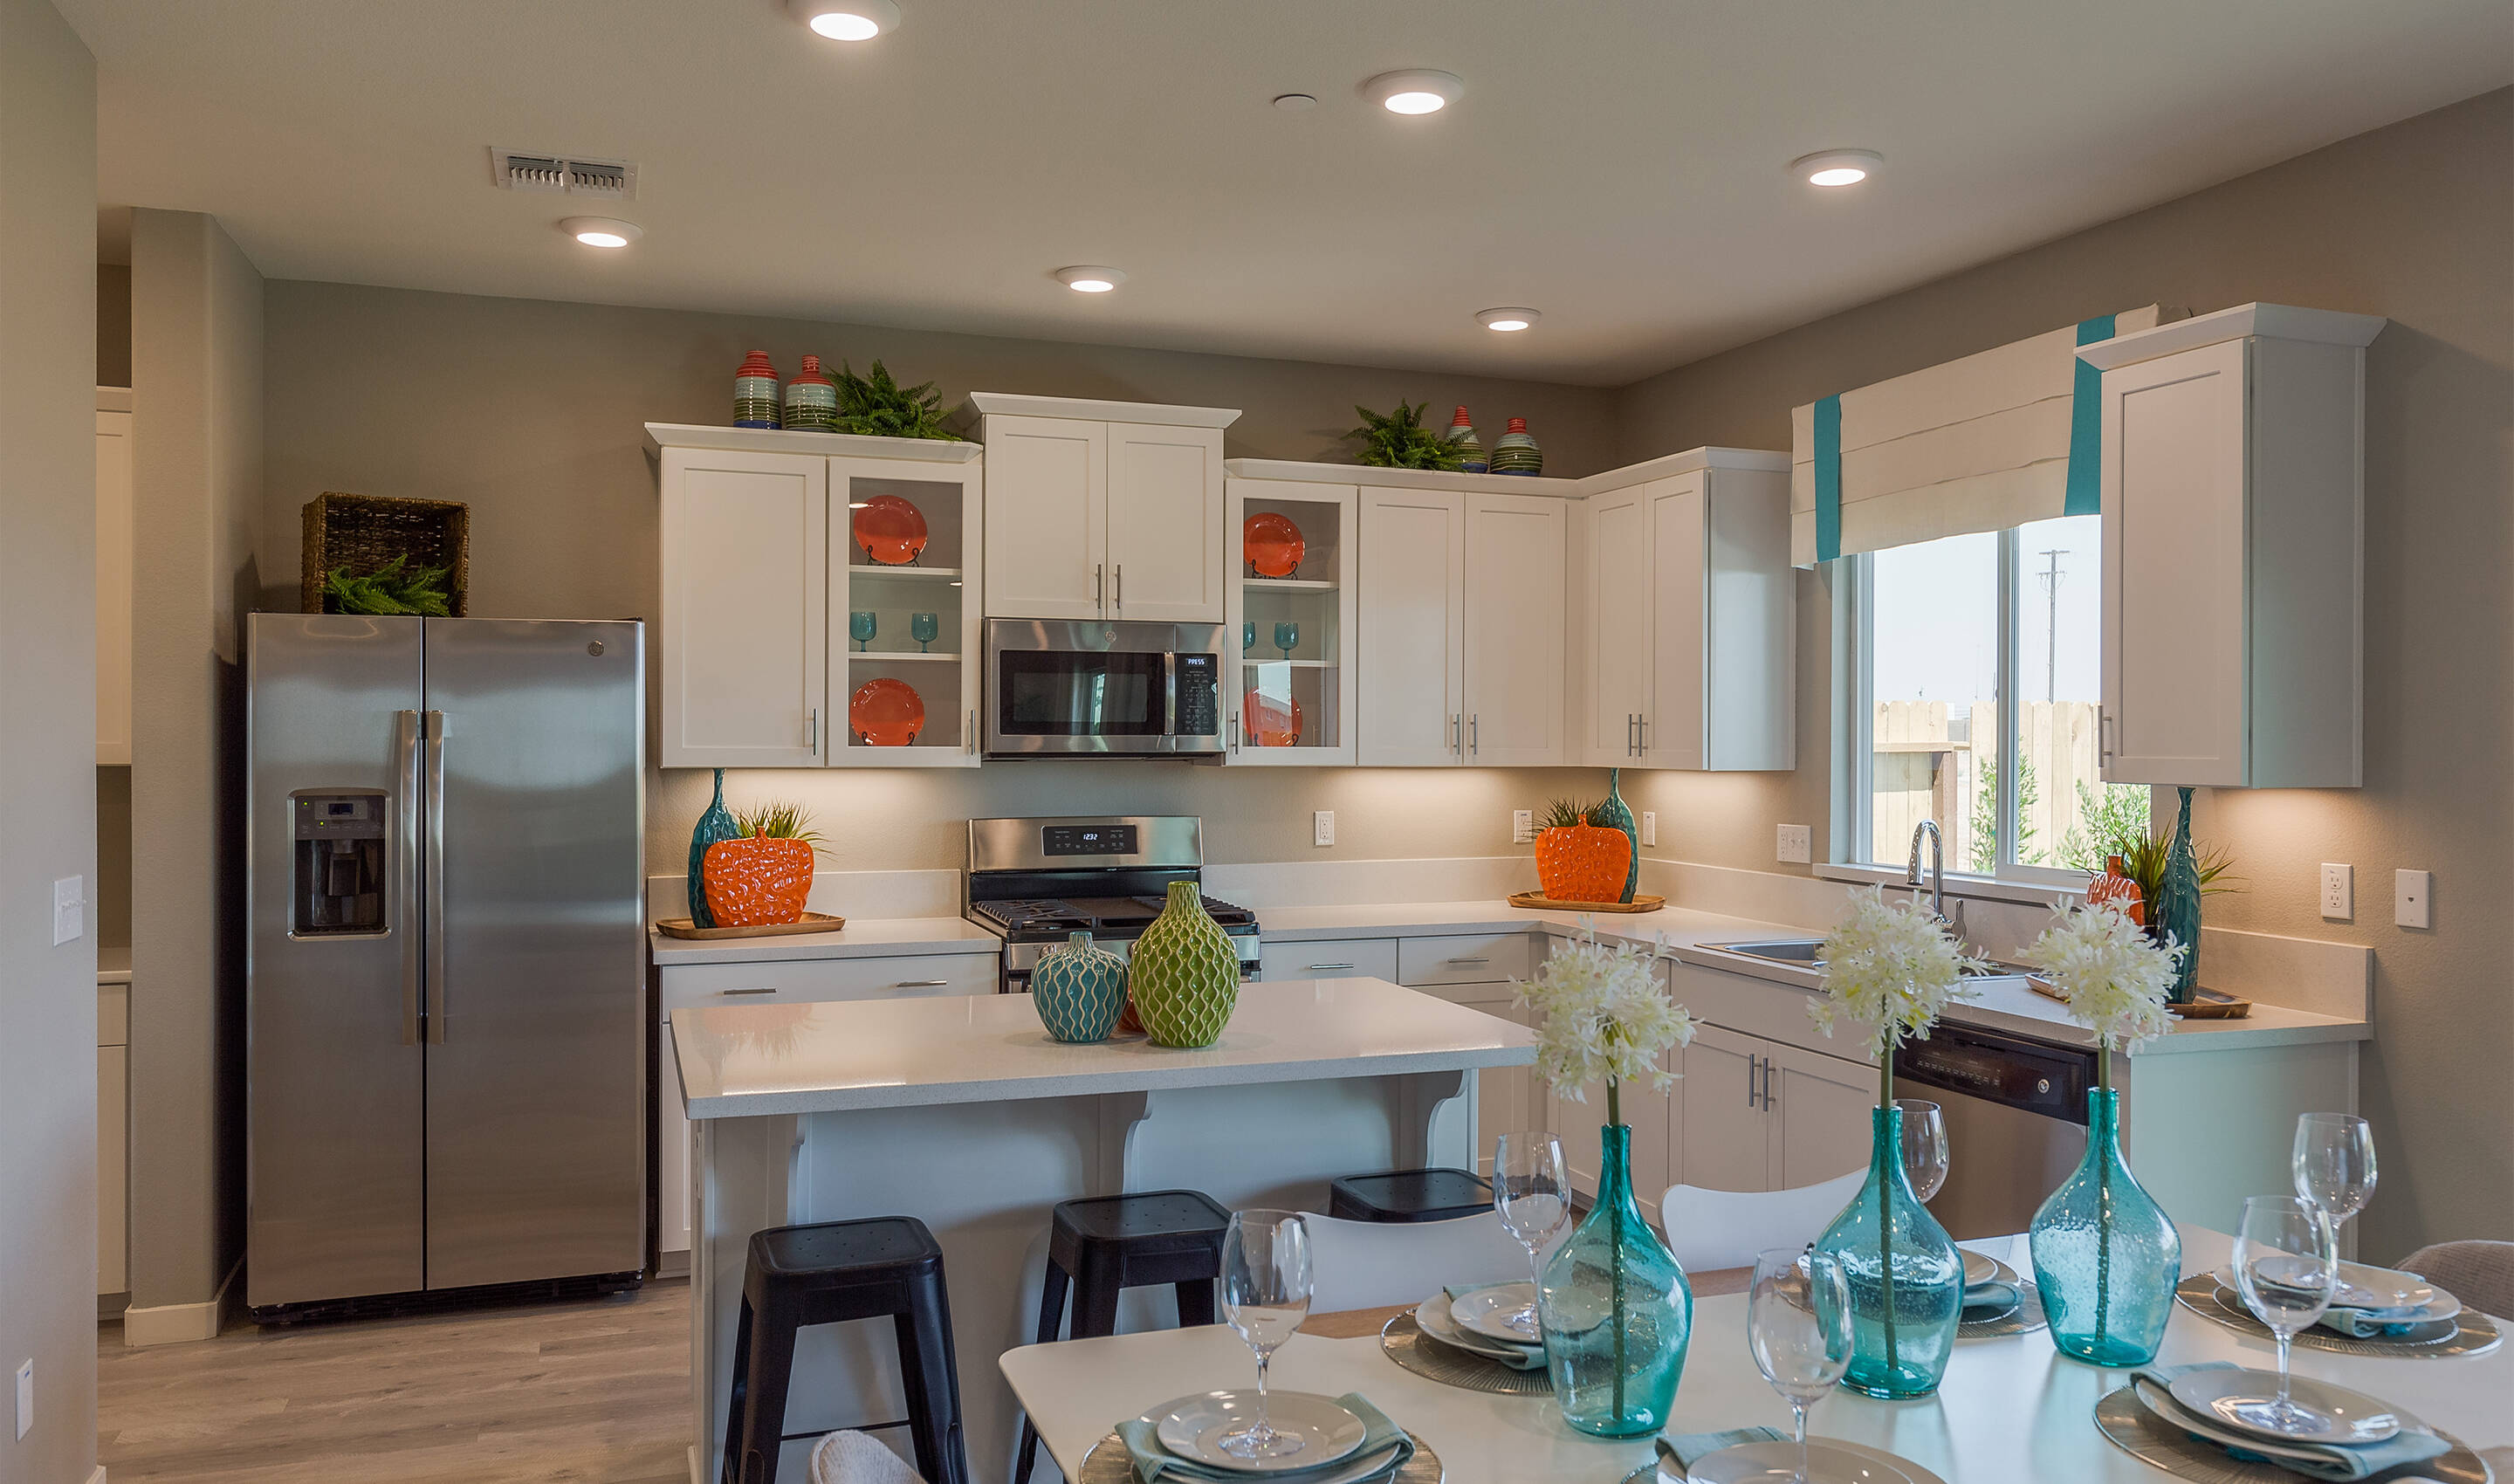 khov_sacramento_aspire at sierra vista_primrose_kitchen 1